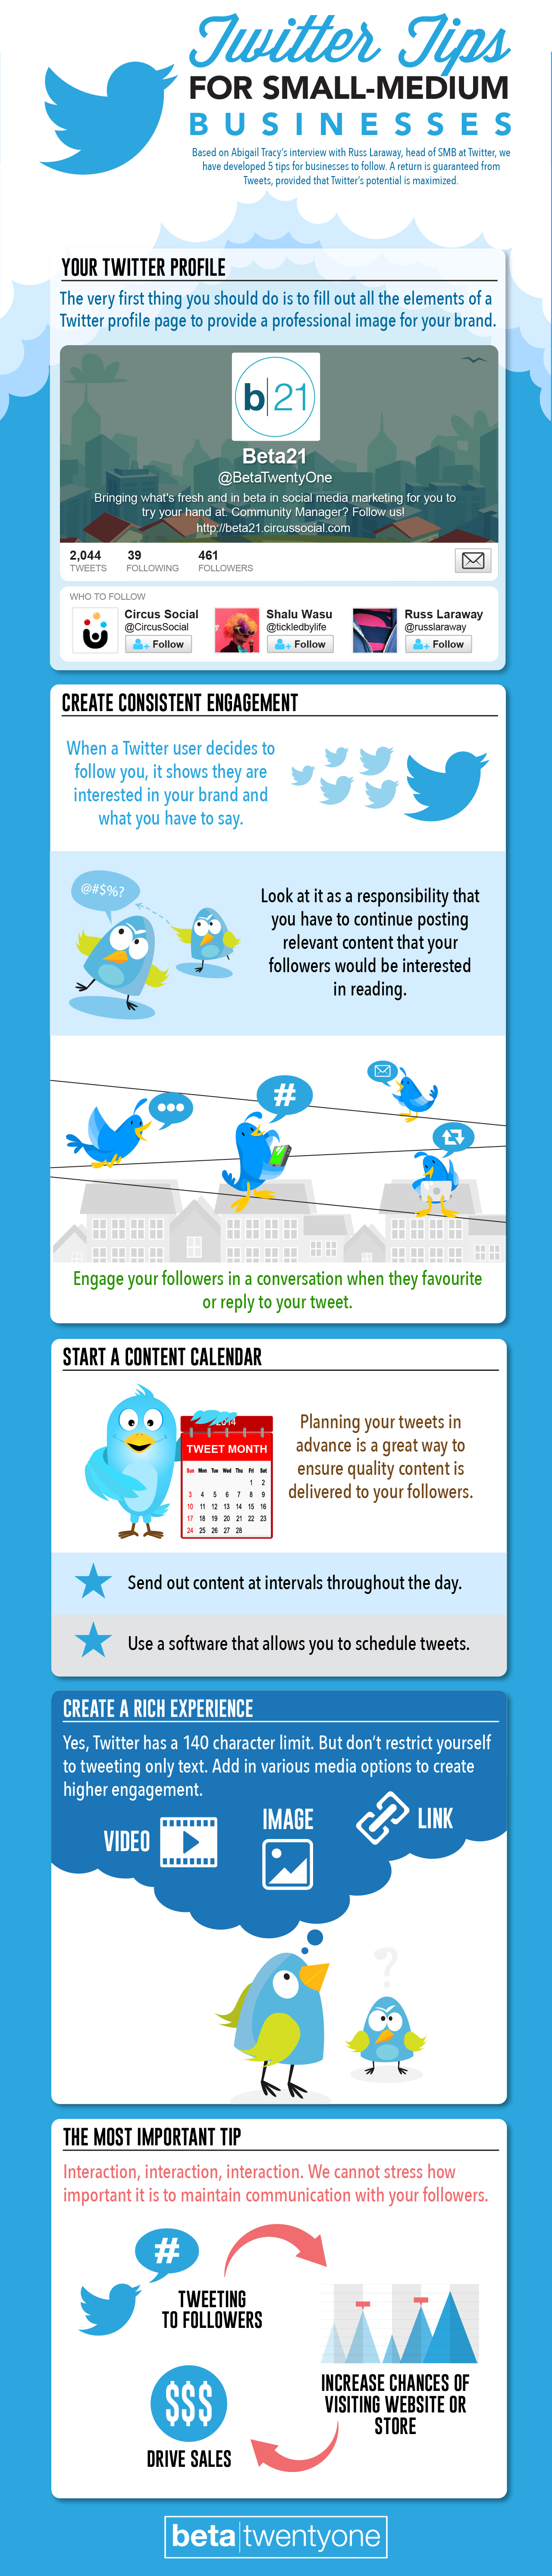 twitter-tips-for-small-medium-business